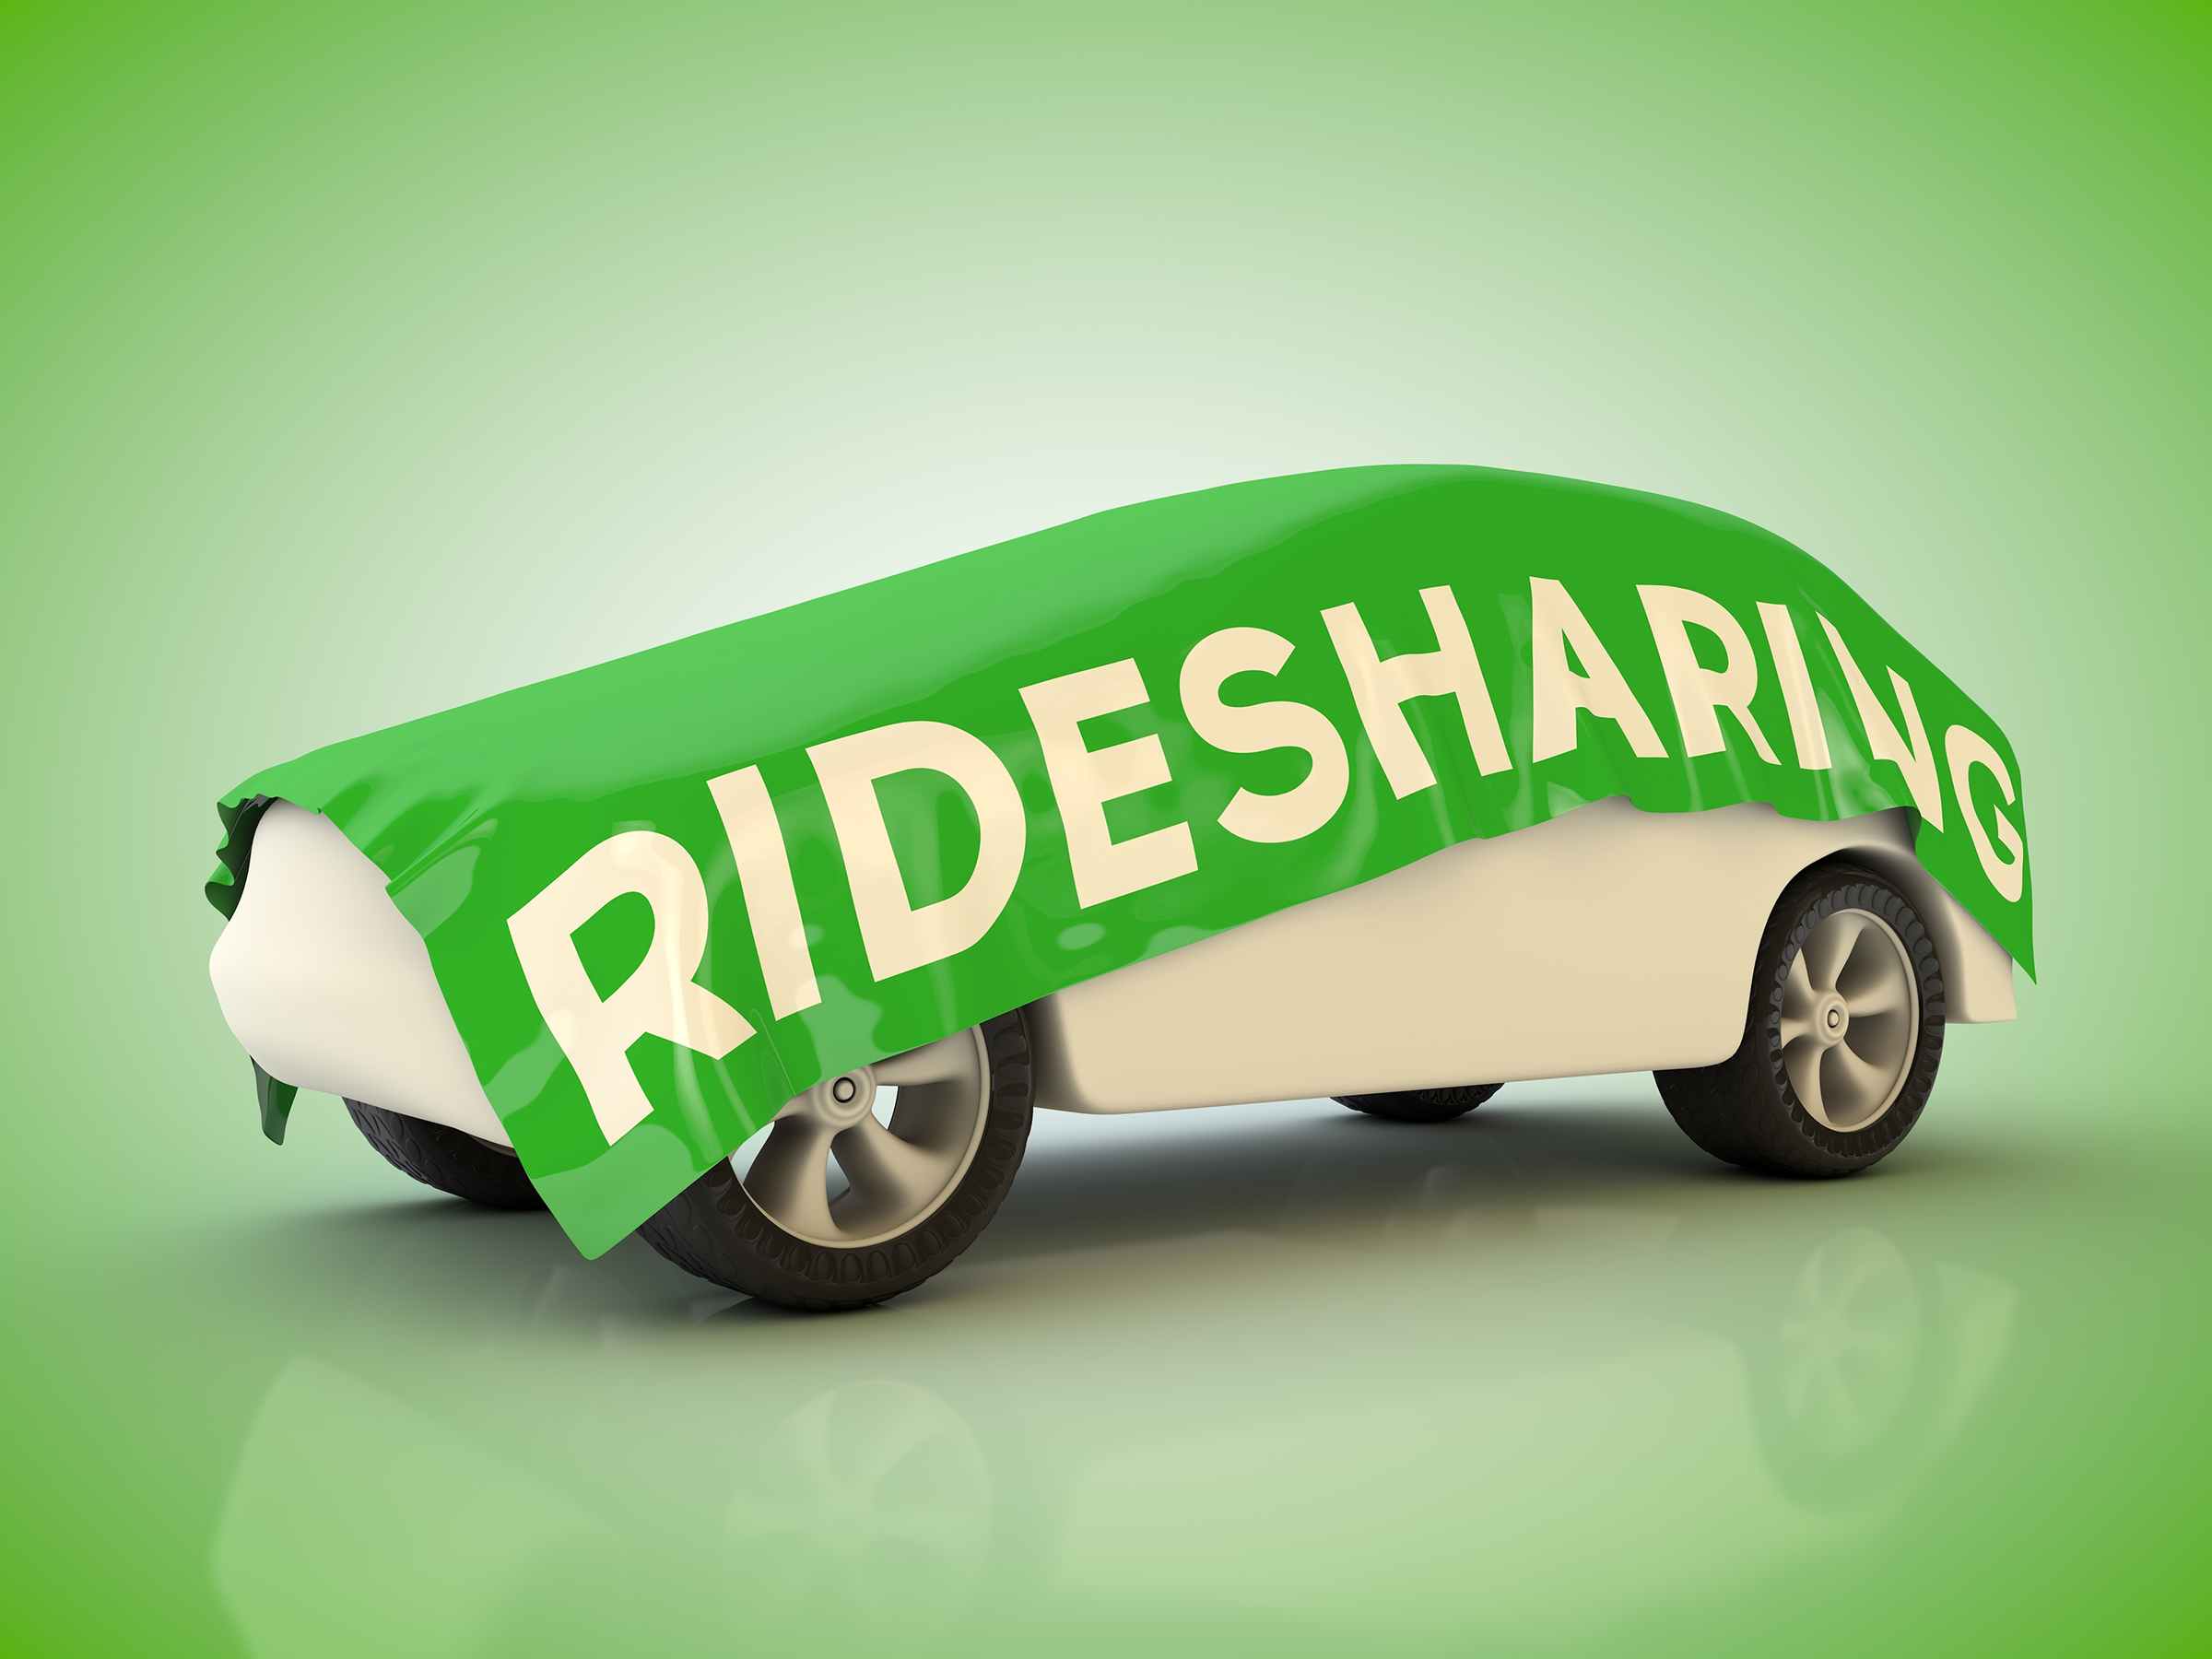 Personal security when ride sharing